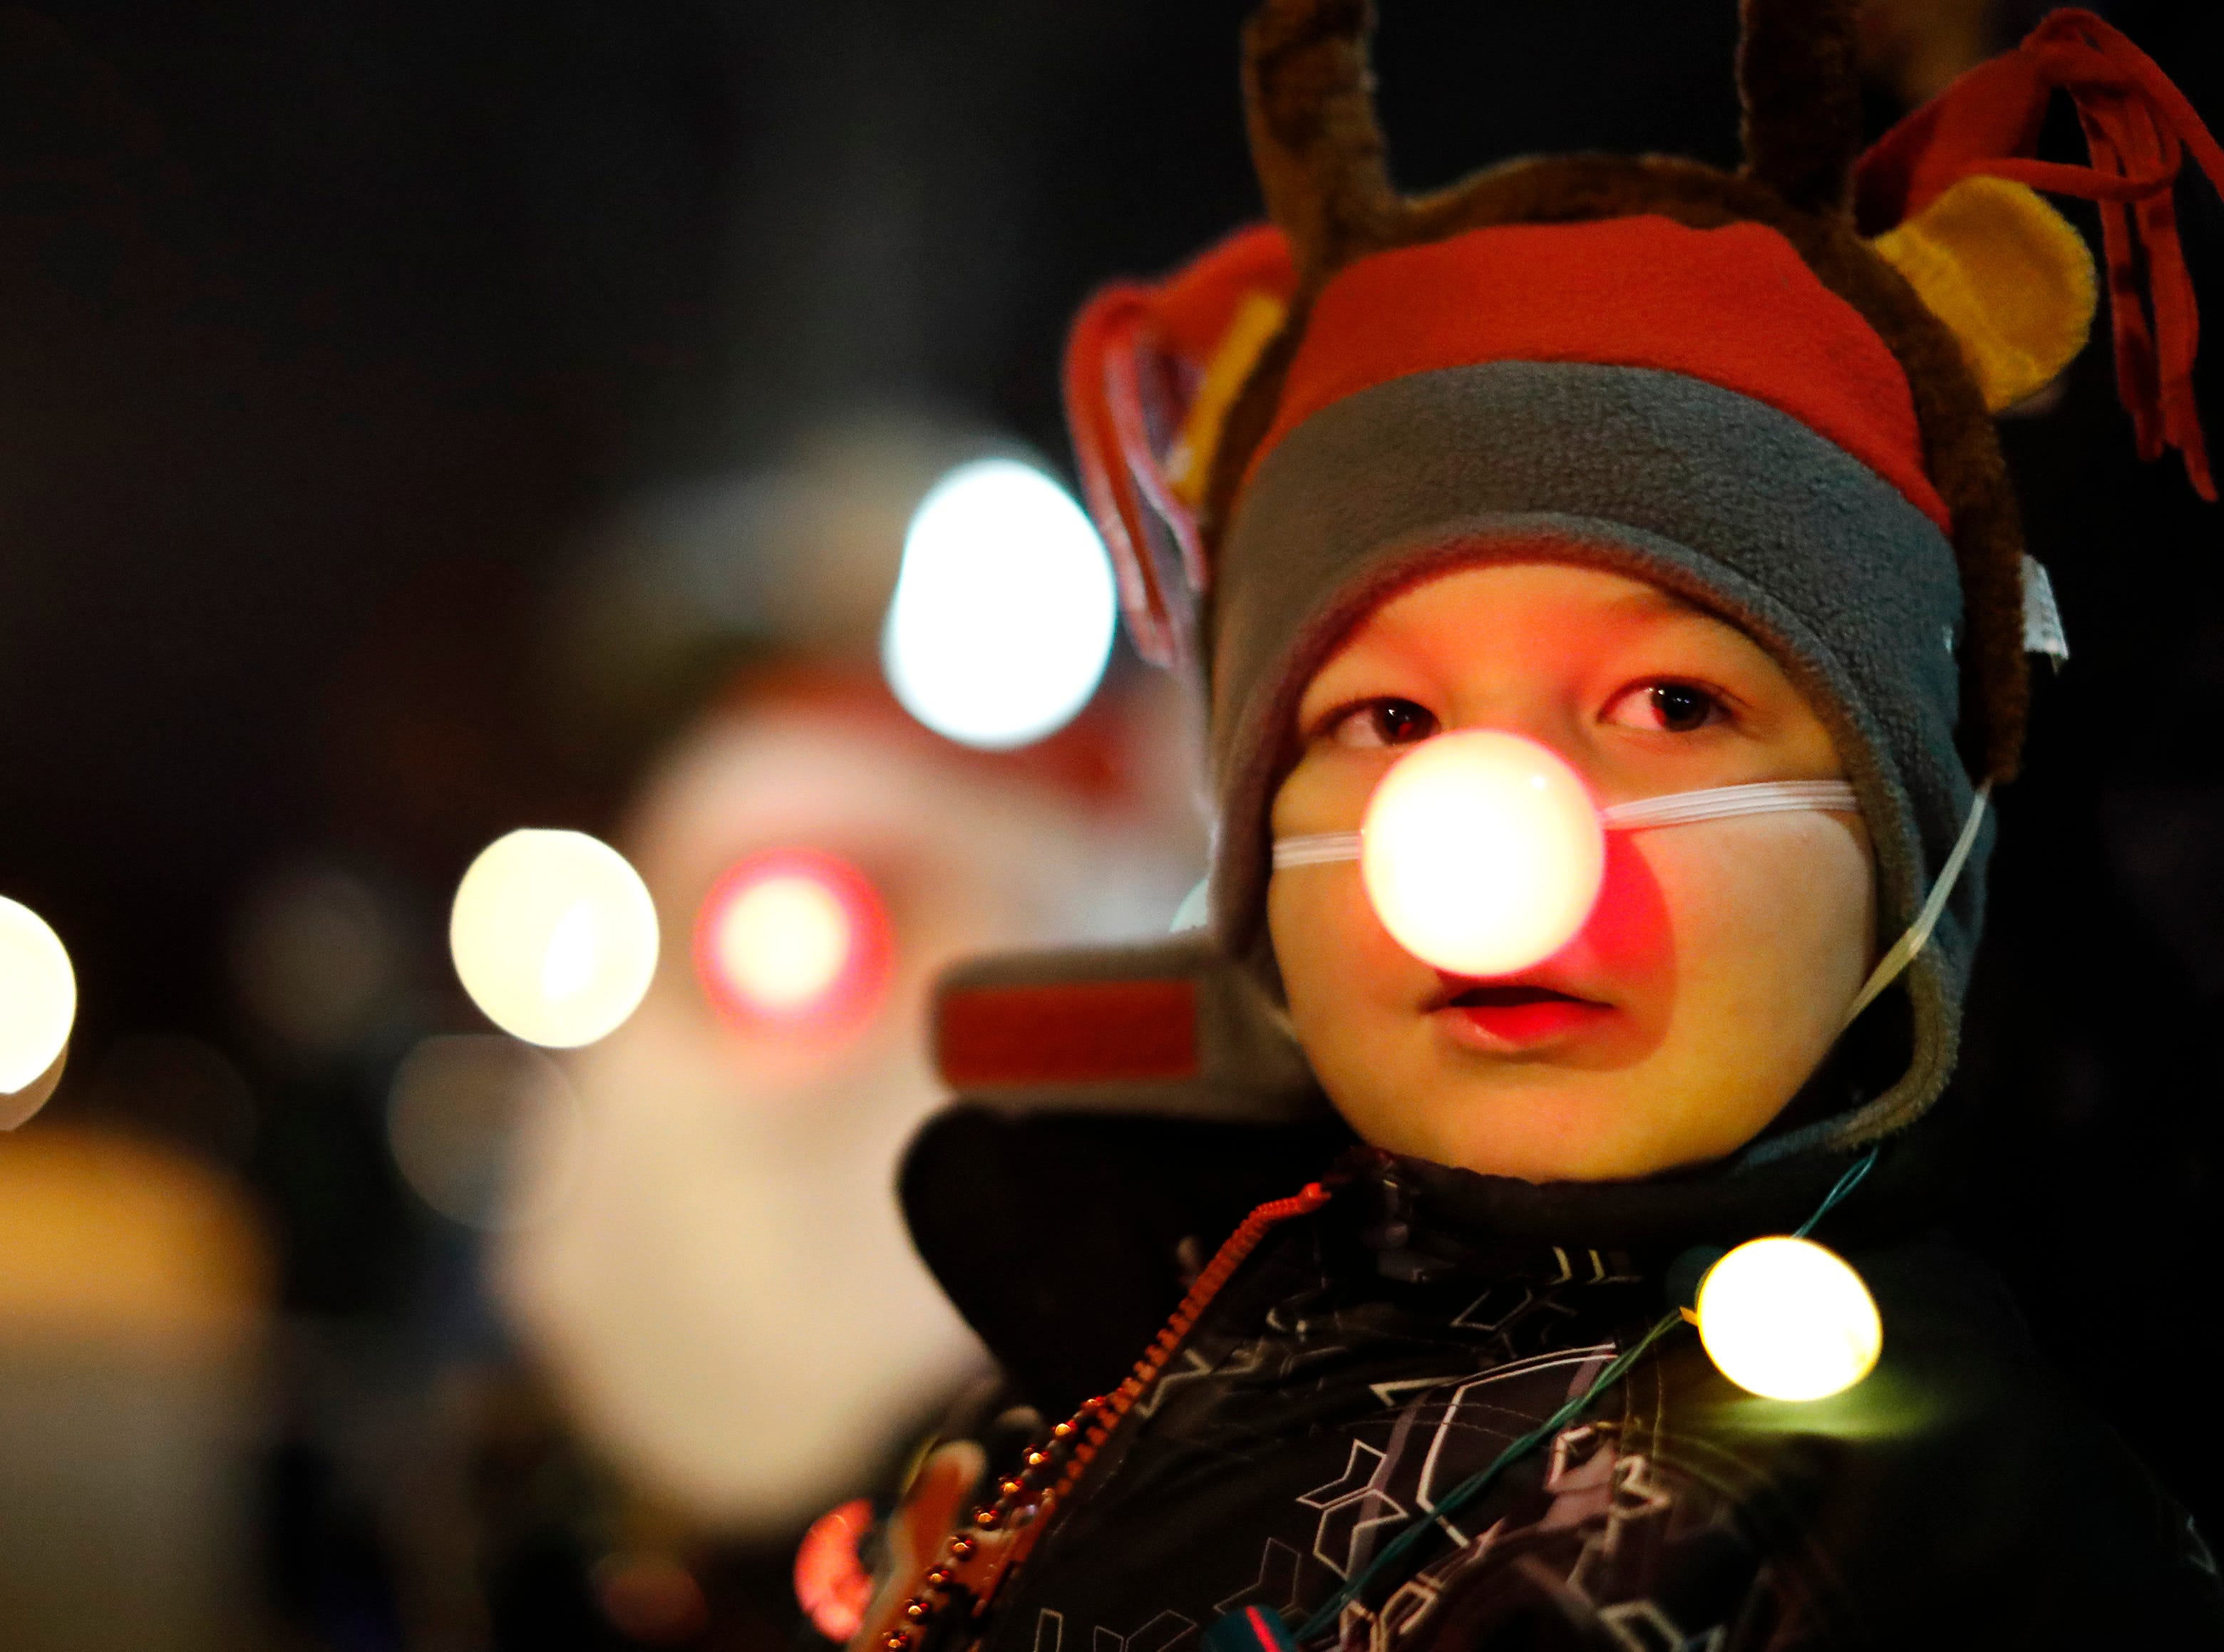 Camden Vandenberg, 5, is dressed as Rudolph the Red Nosed Reindeer while waiting for the Electric City Christmas Parade to start  Tuesday, Dec. 4, 2018, in Kaukauna, Wis.